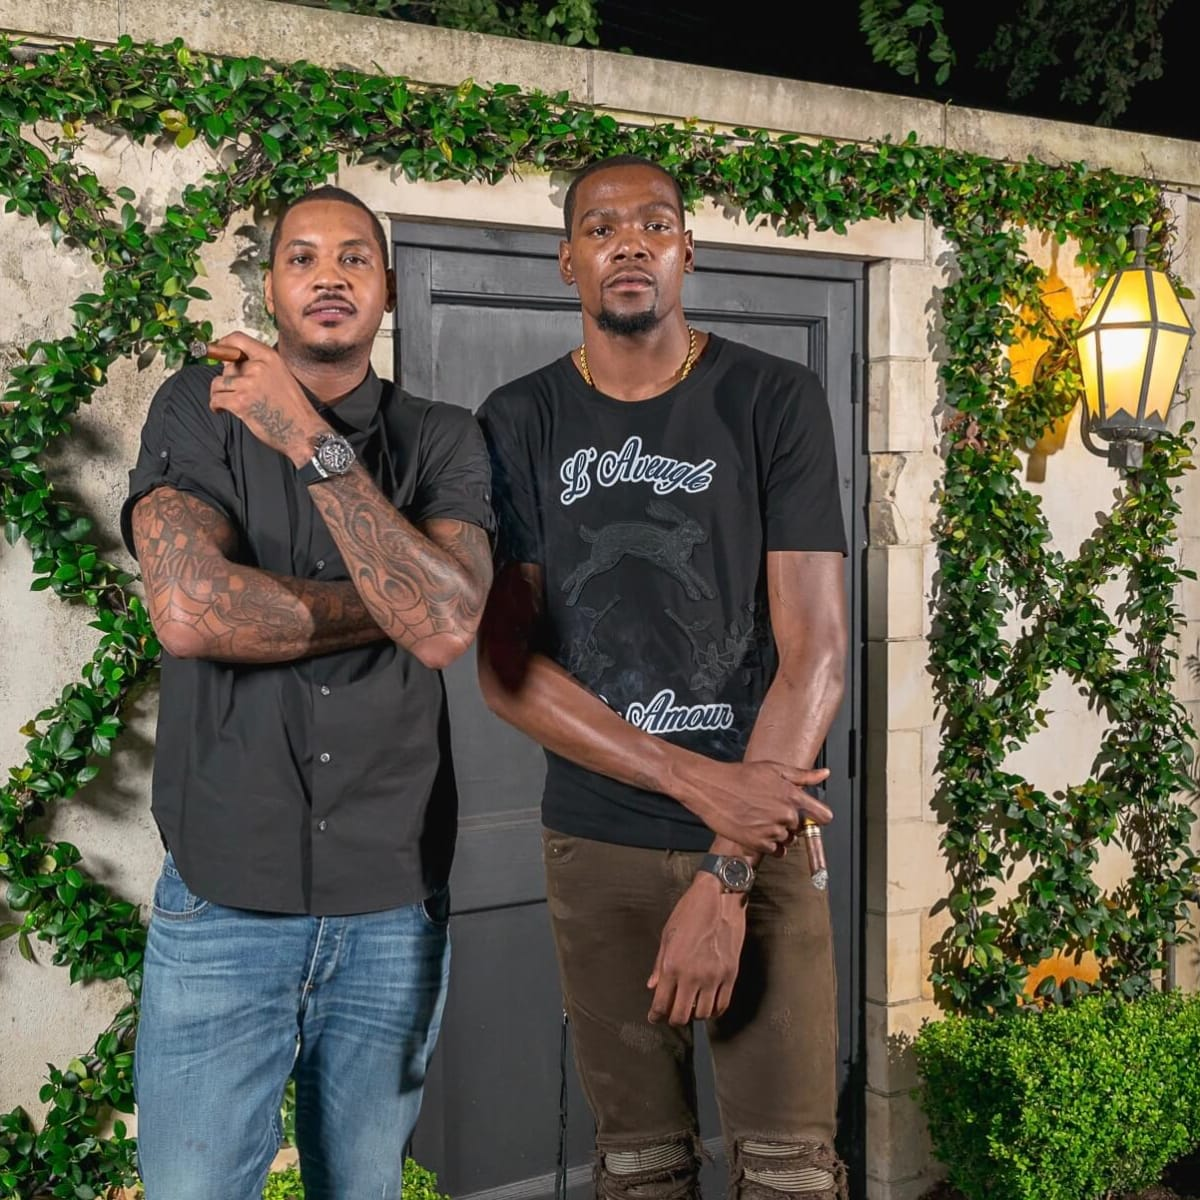 Olympic Basketball party 7/16, Hublot watch, Carmelo Anthony, Kevin Durant